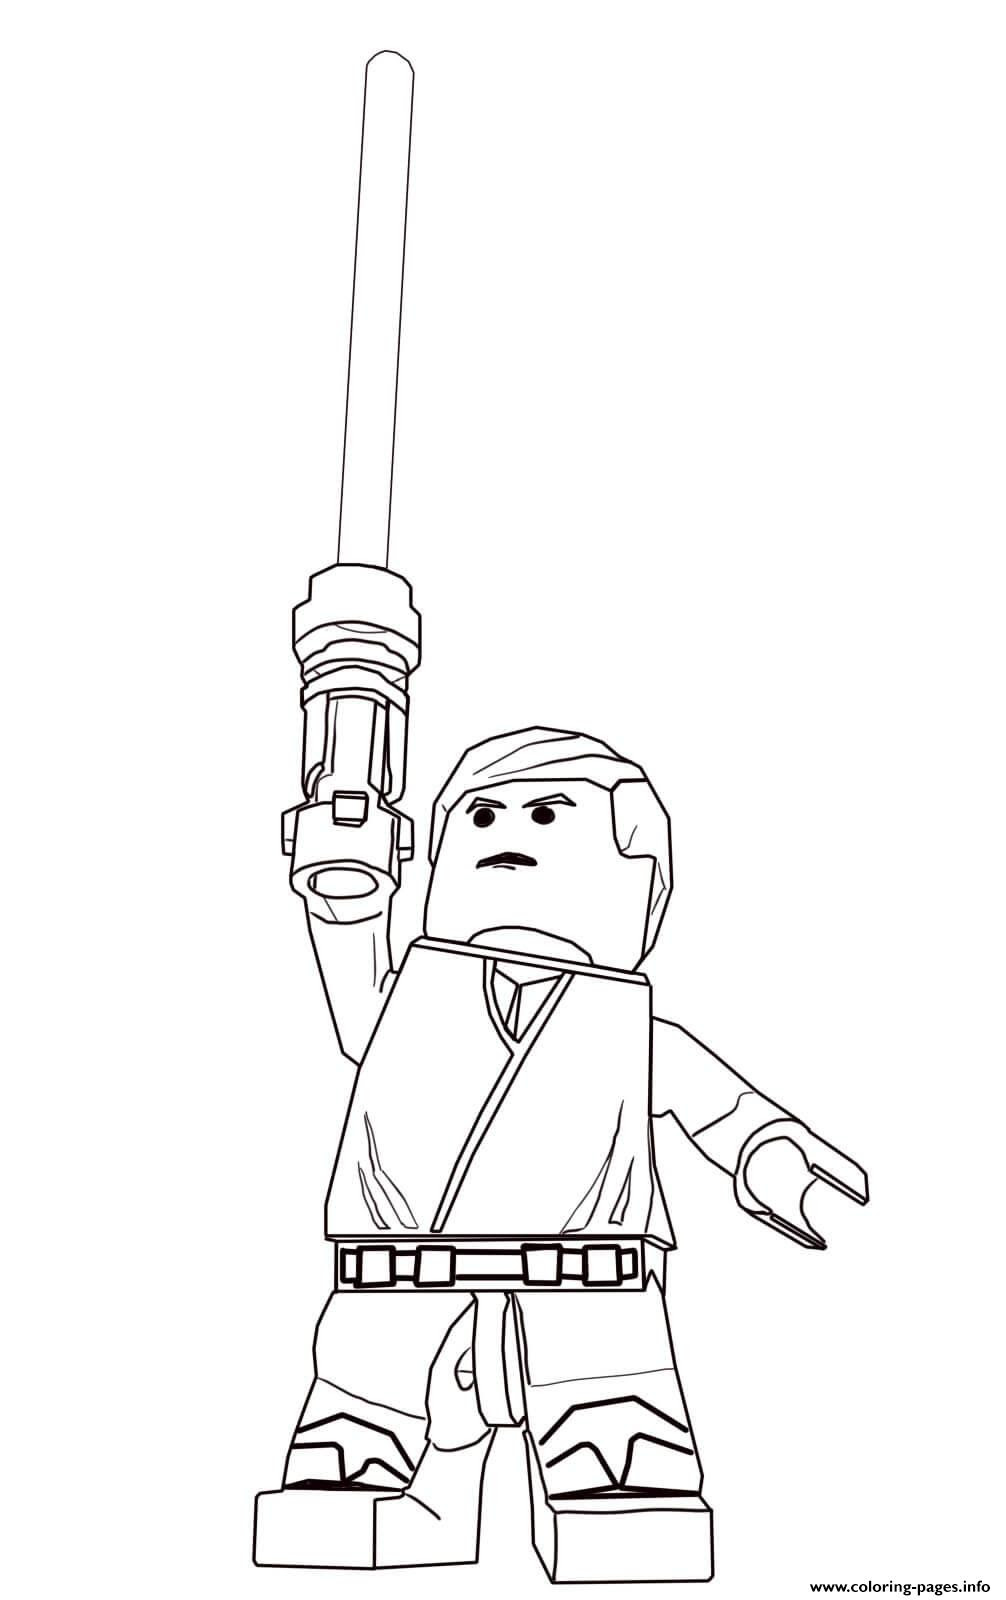 Print Lego Star Wars Luke Skywalker Coloring Pages Coloring Home